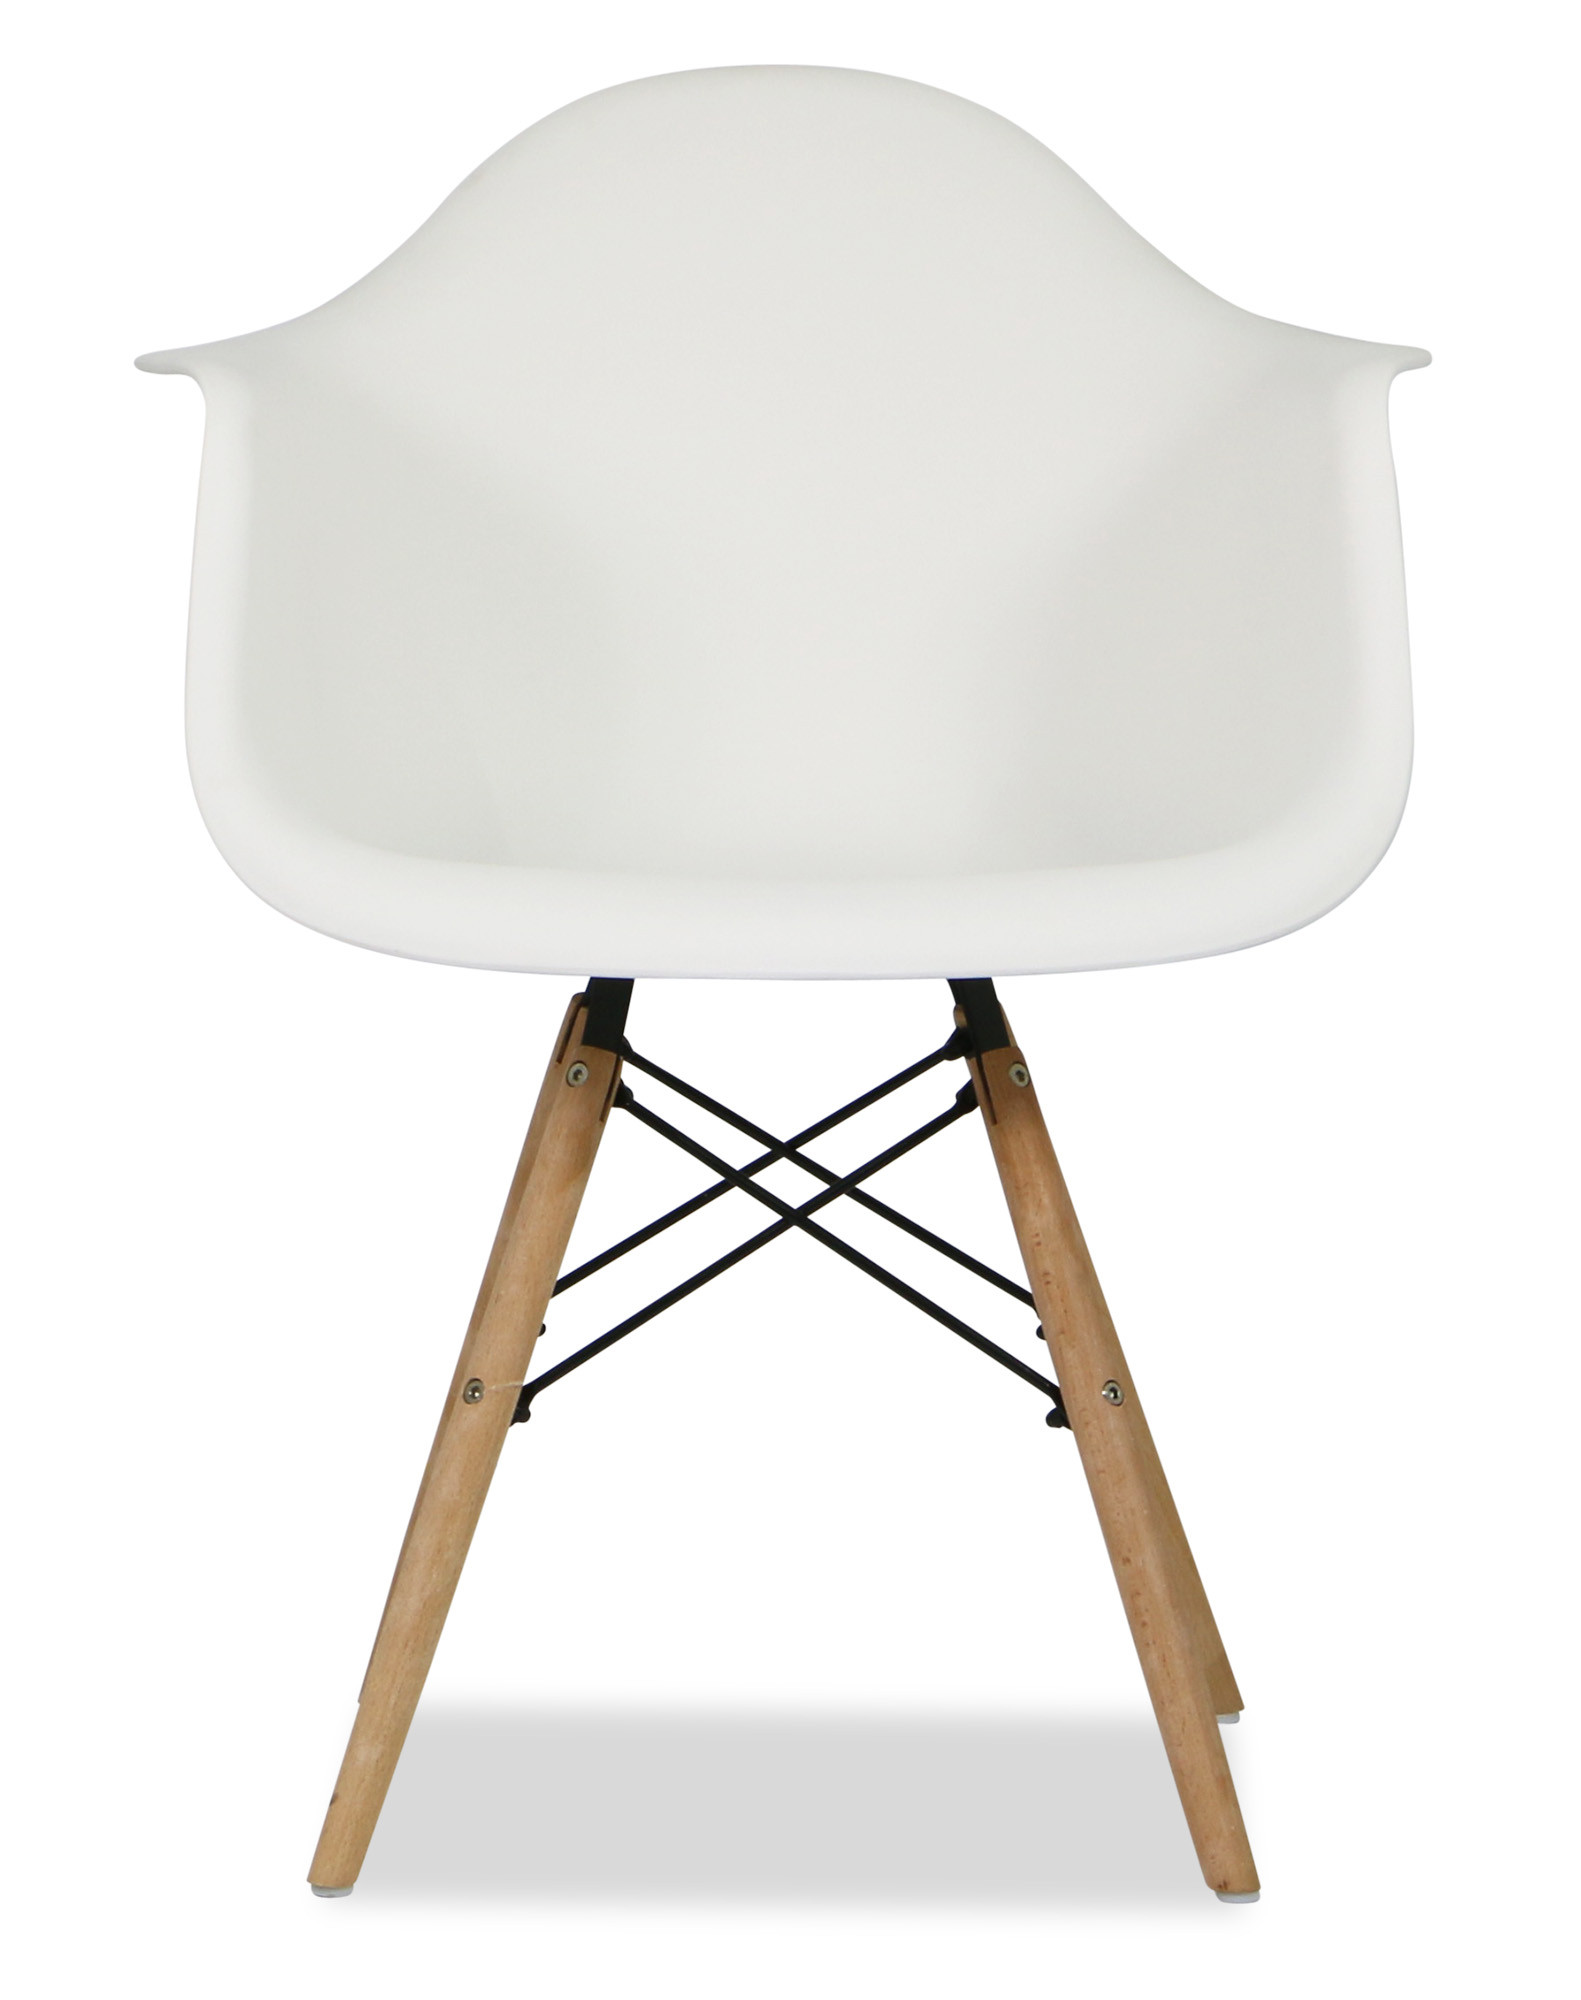 eames replica designer arm chair white armchairs accent chairs seating furniture. Black Bedroom Furniture Sets. Home Design Ideas